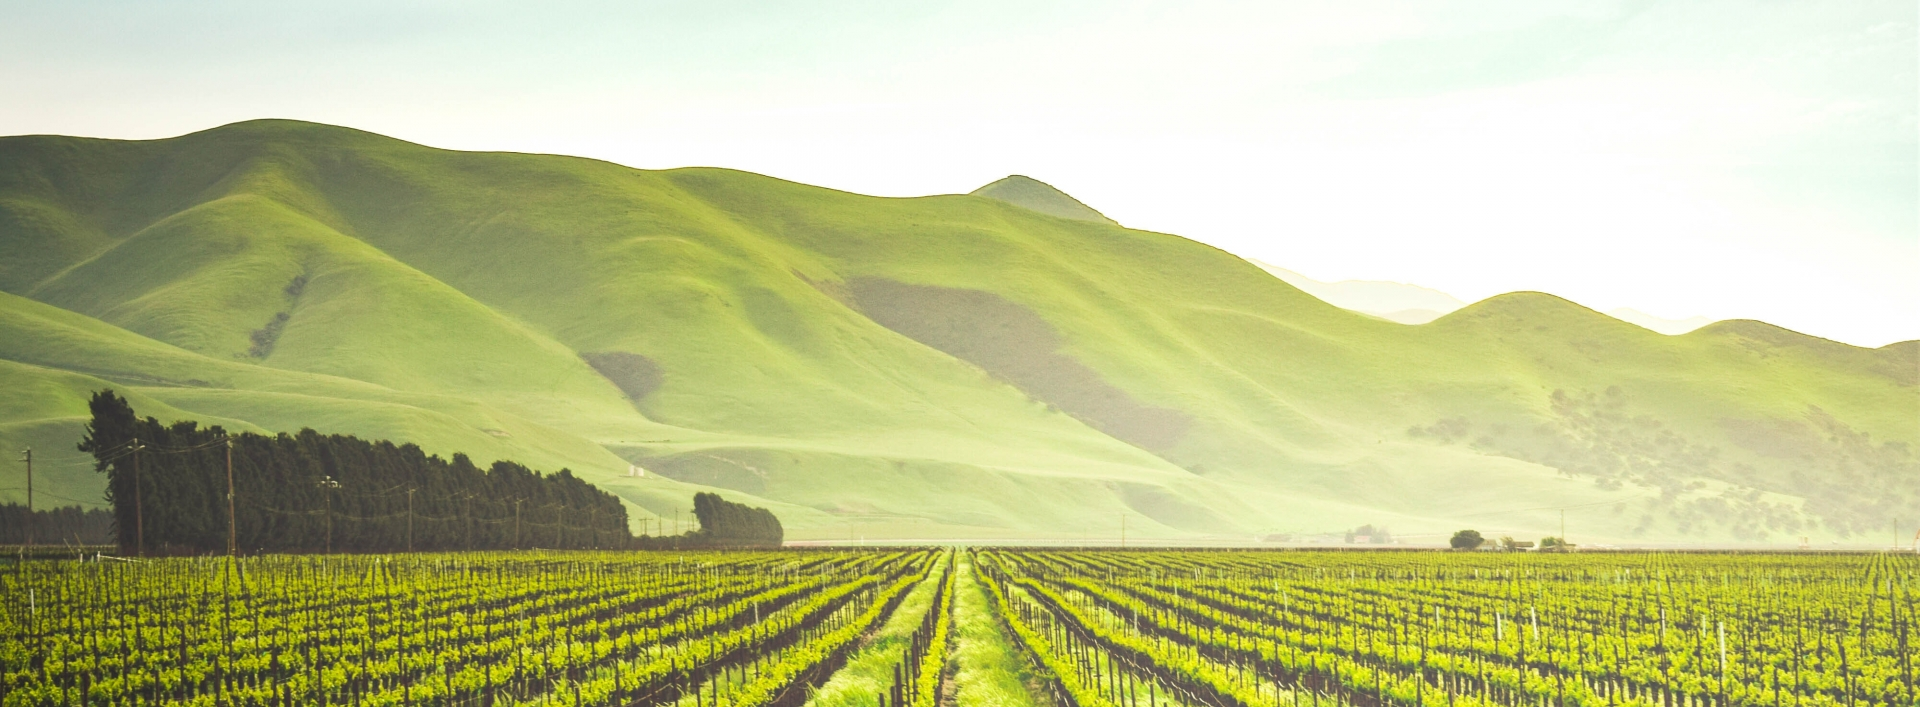 Green crop rows with a scenic backdrop of hills and sky